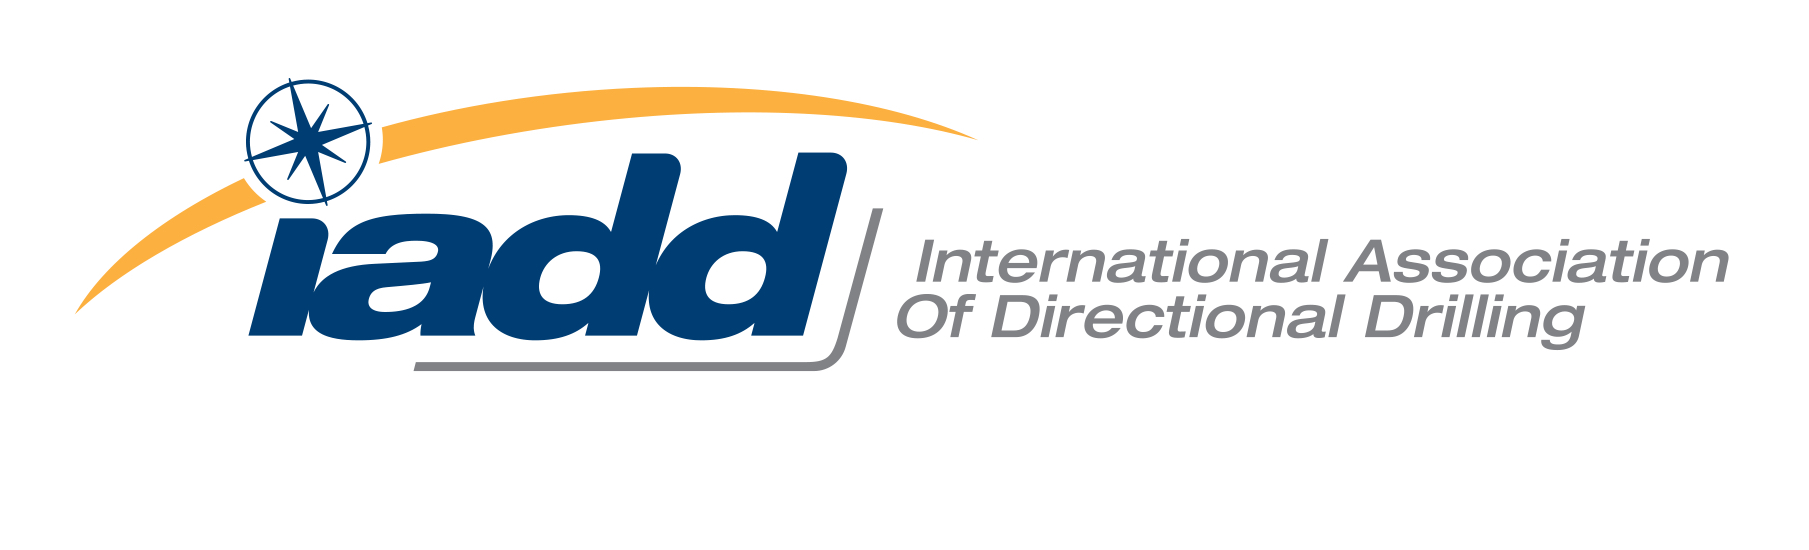 IADD International Association of Directional Drilling